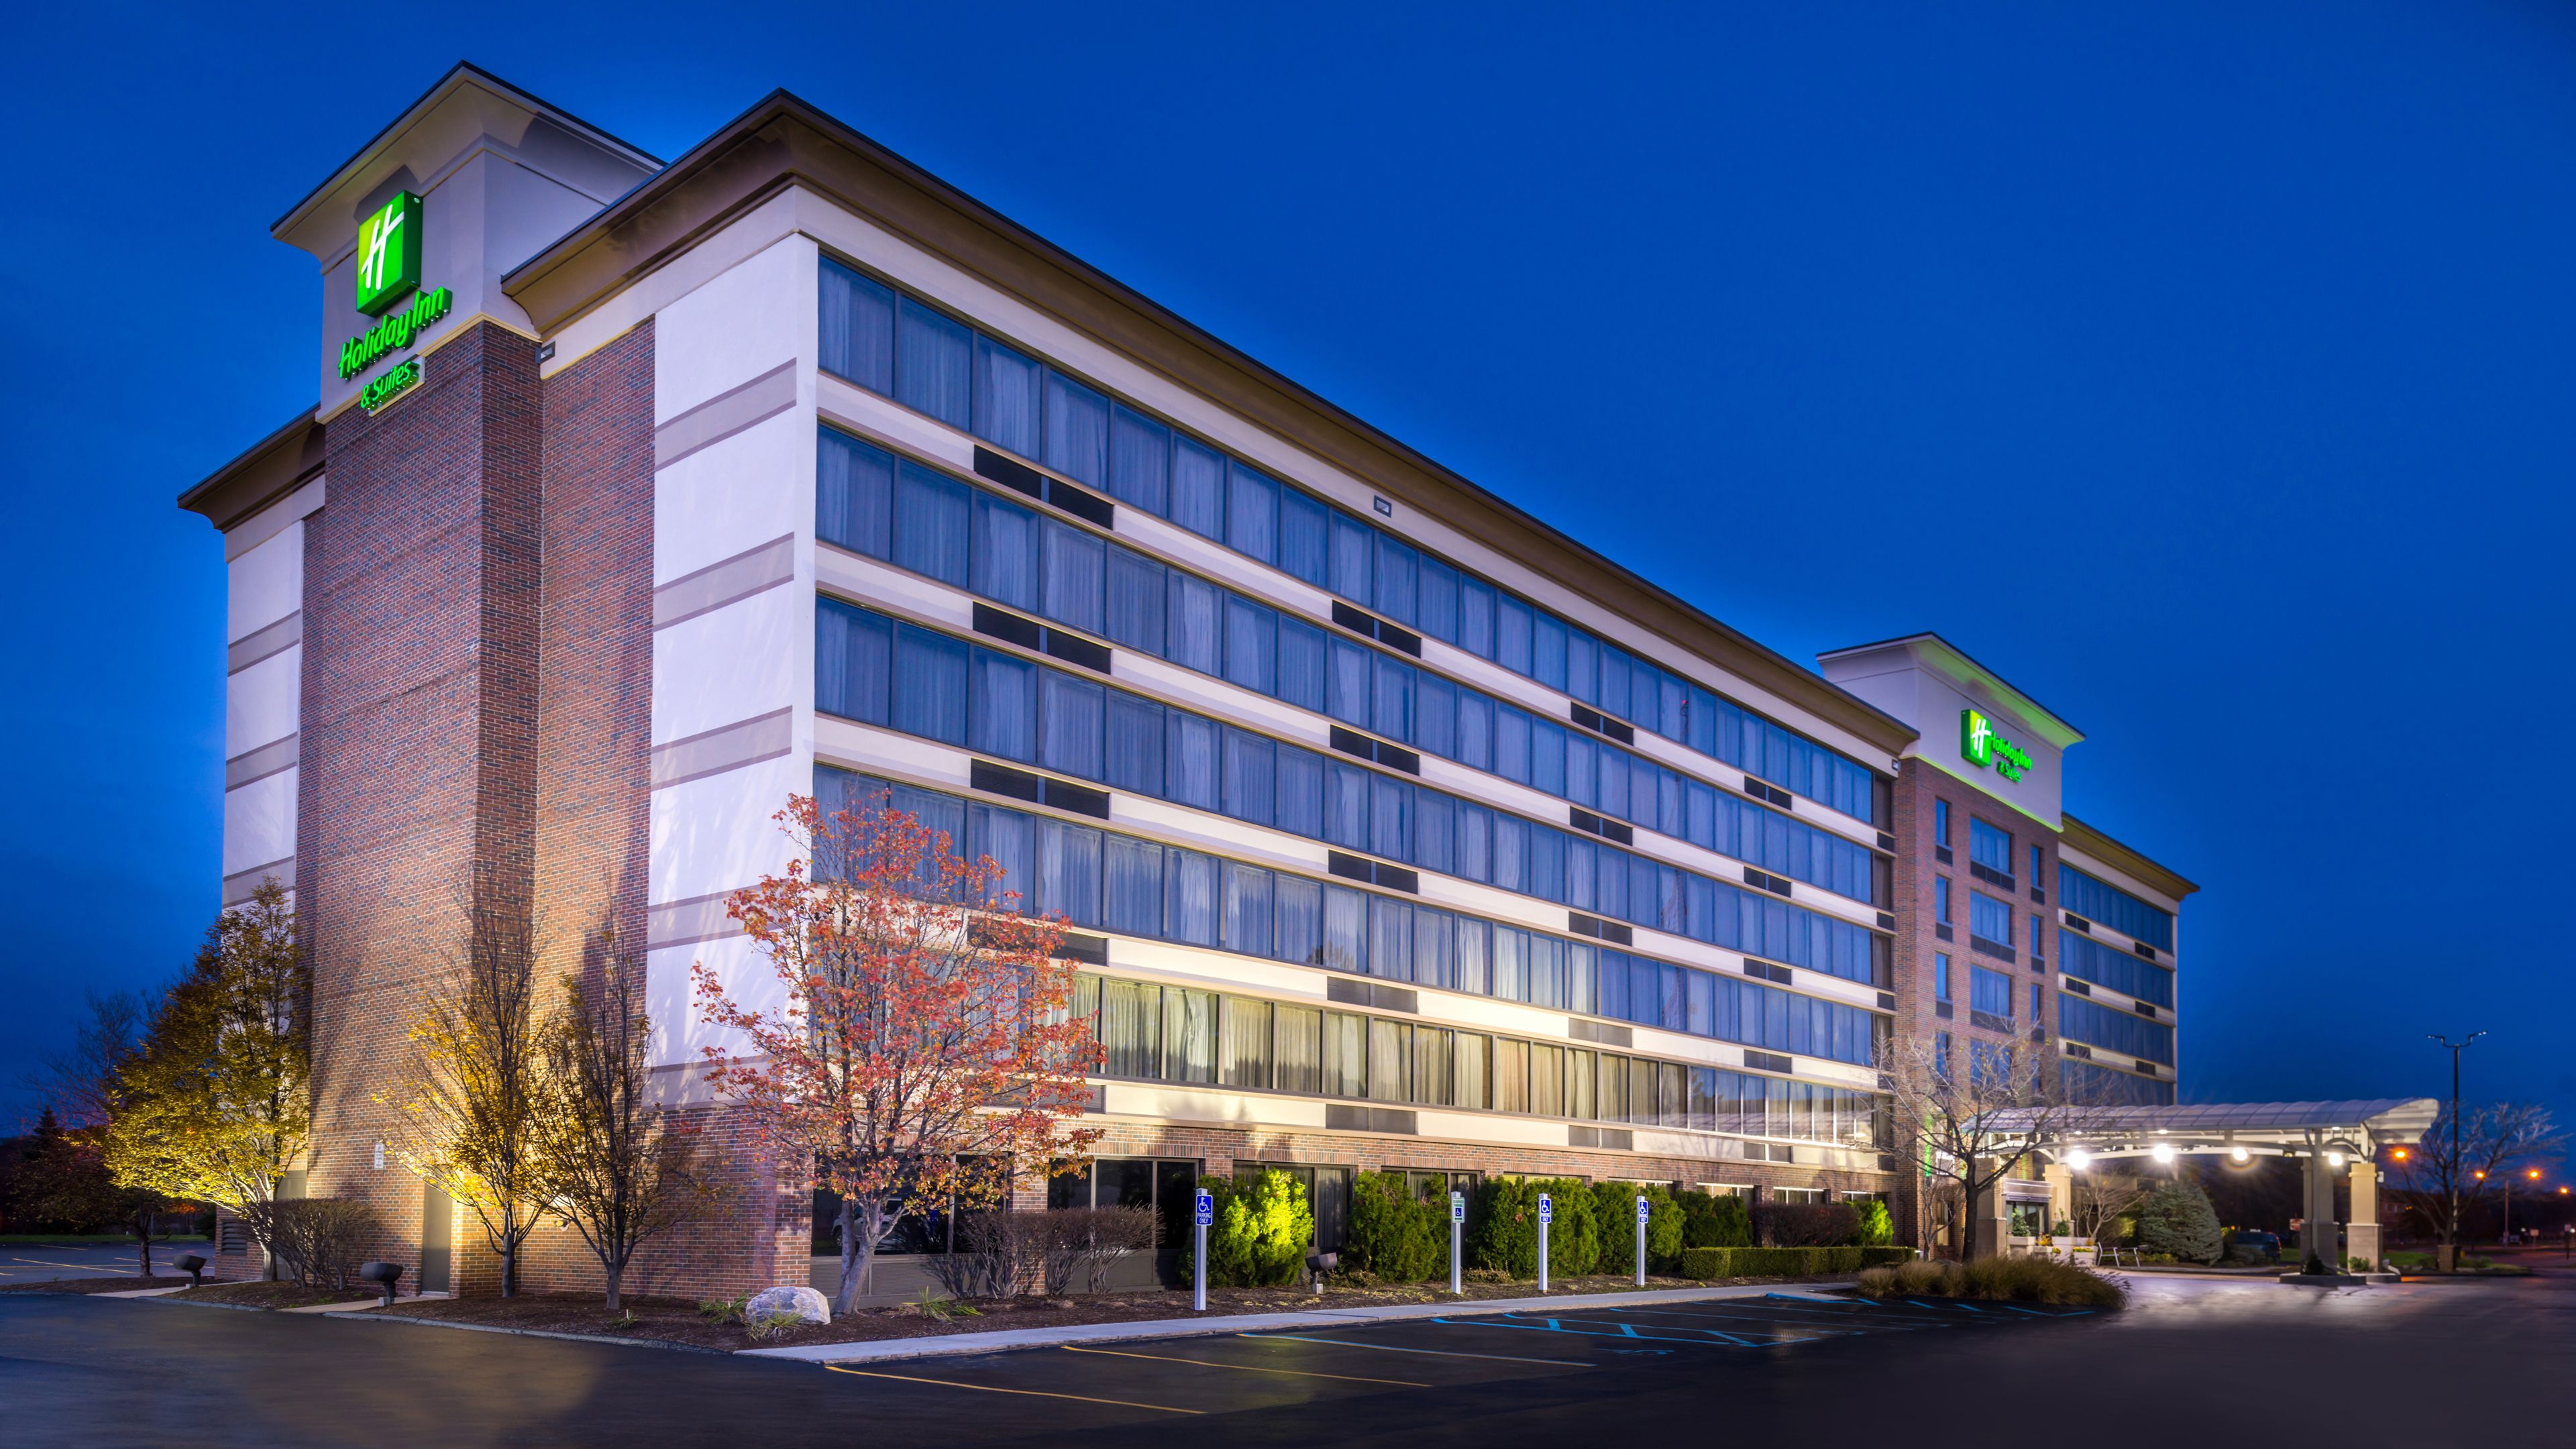 Hotel reviews hotel deals hotels near me ihg autos post for Hotels 8 near me